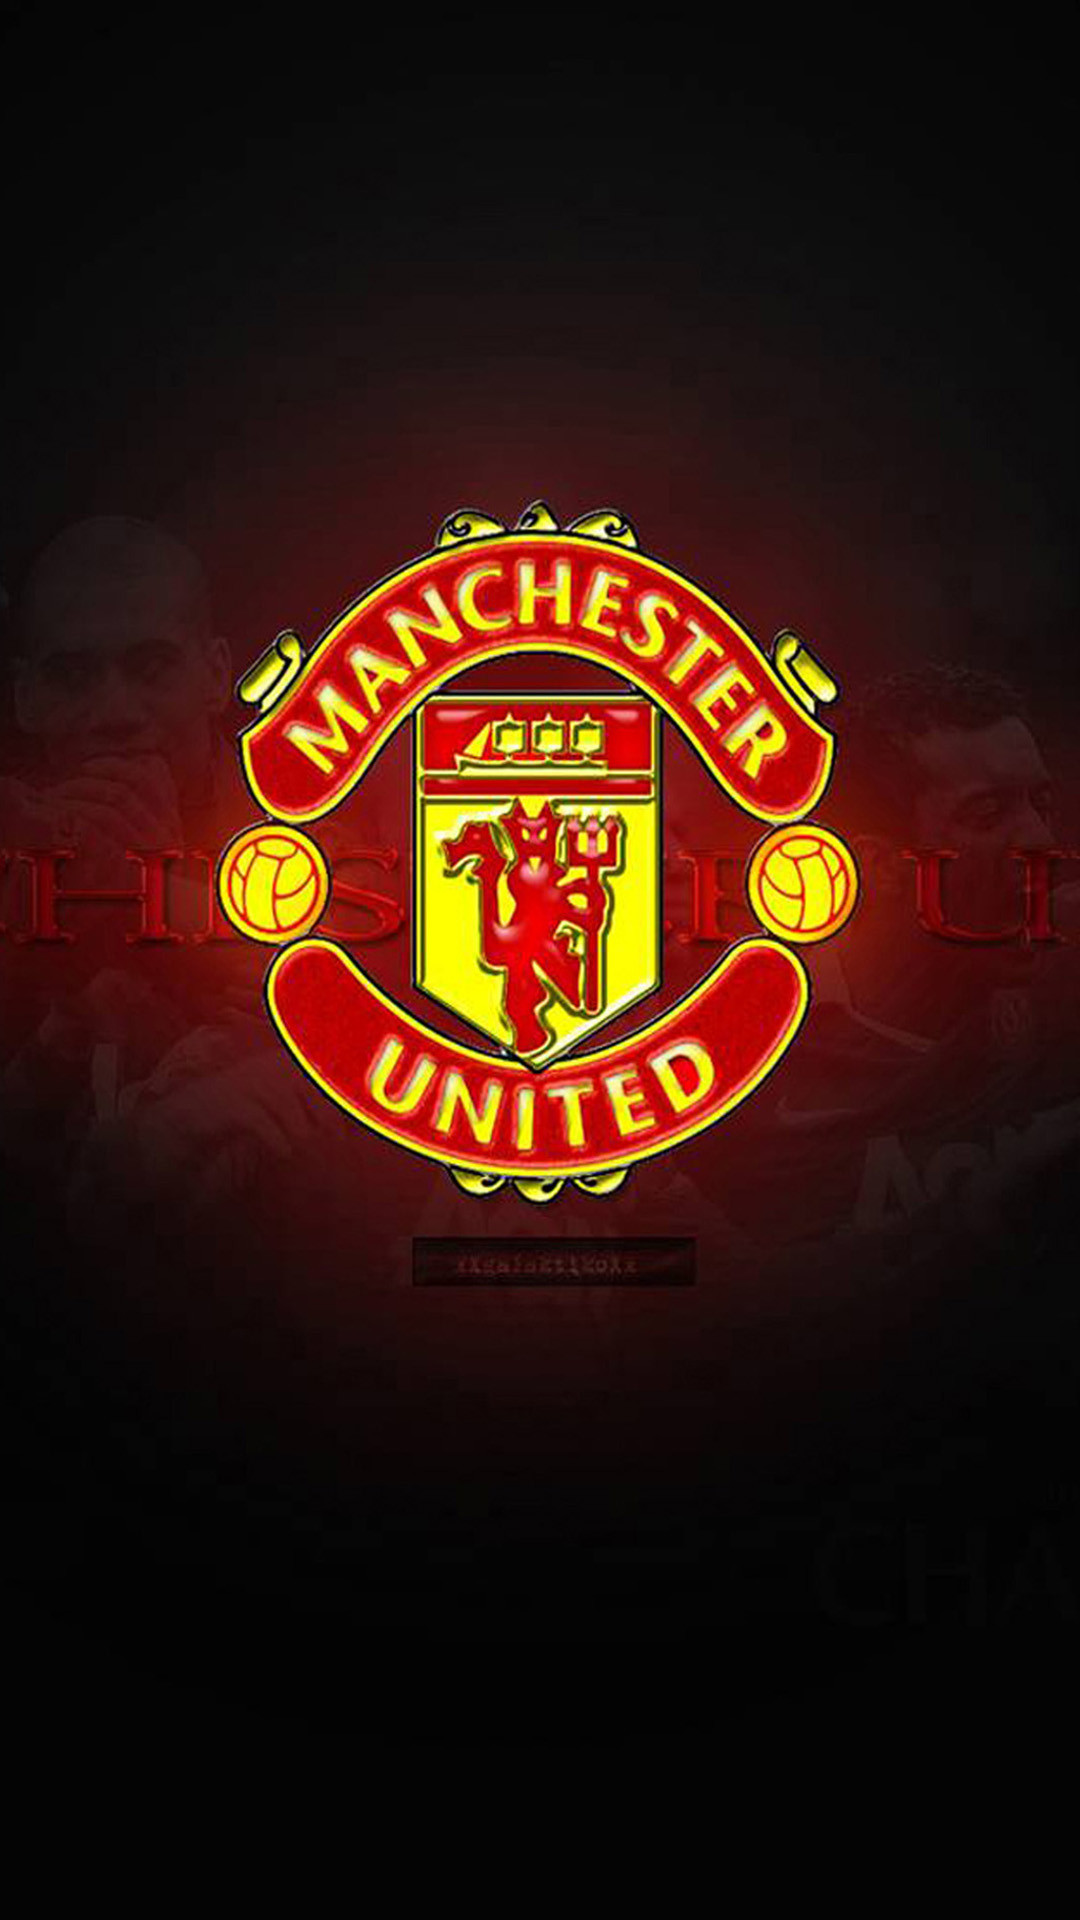 1080x1920 Manchester United 2 Samsung Wallpapers, Samsung Galaxy S5, Galaxy S4,  Galaxy Note 3